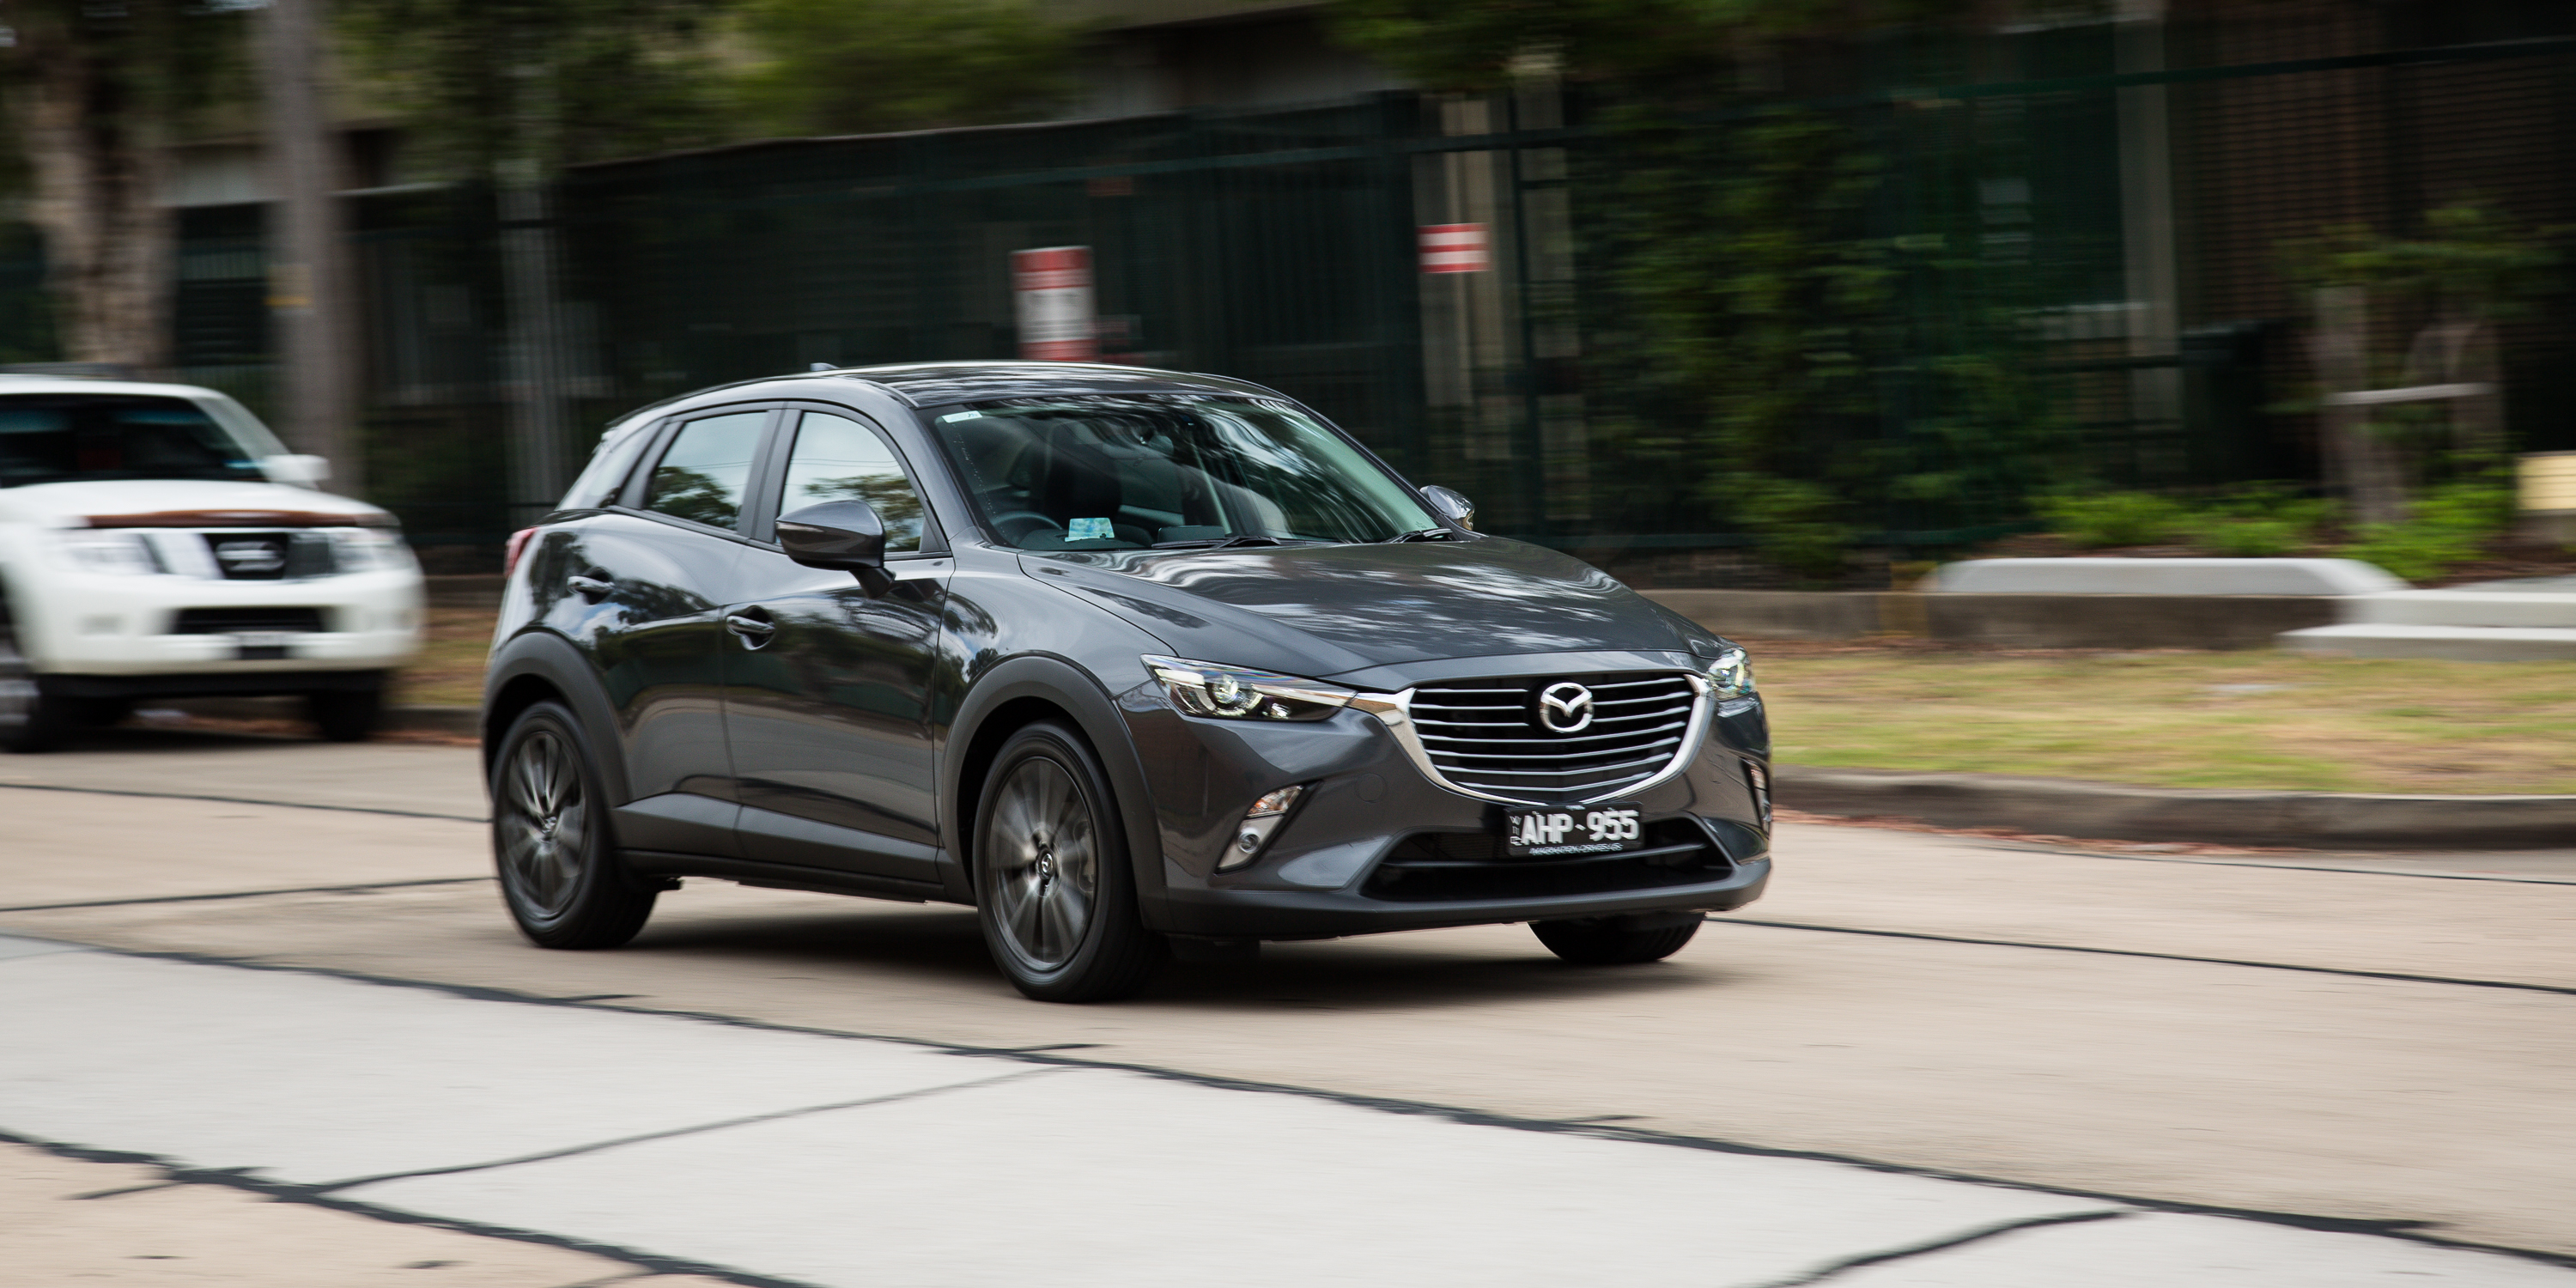 2017 Mazda CX-3 2WD sTouring review - photos | CarAdvice